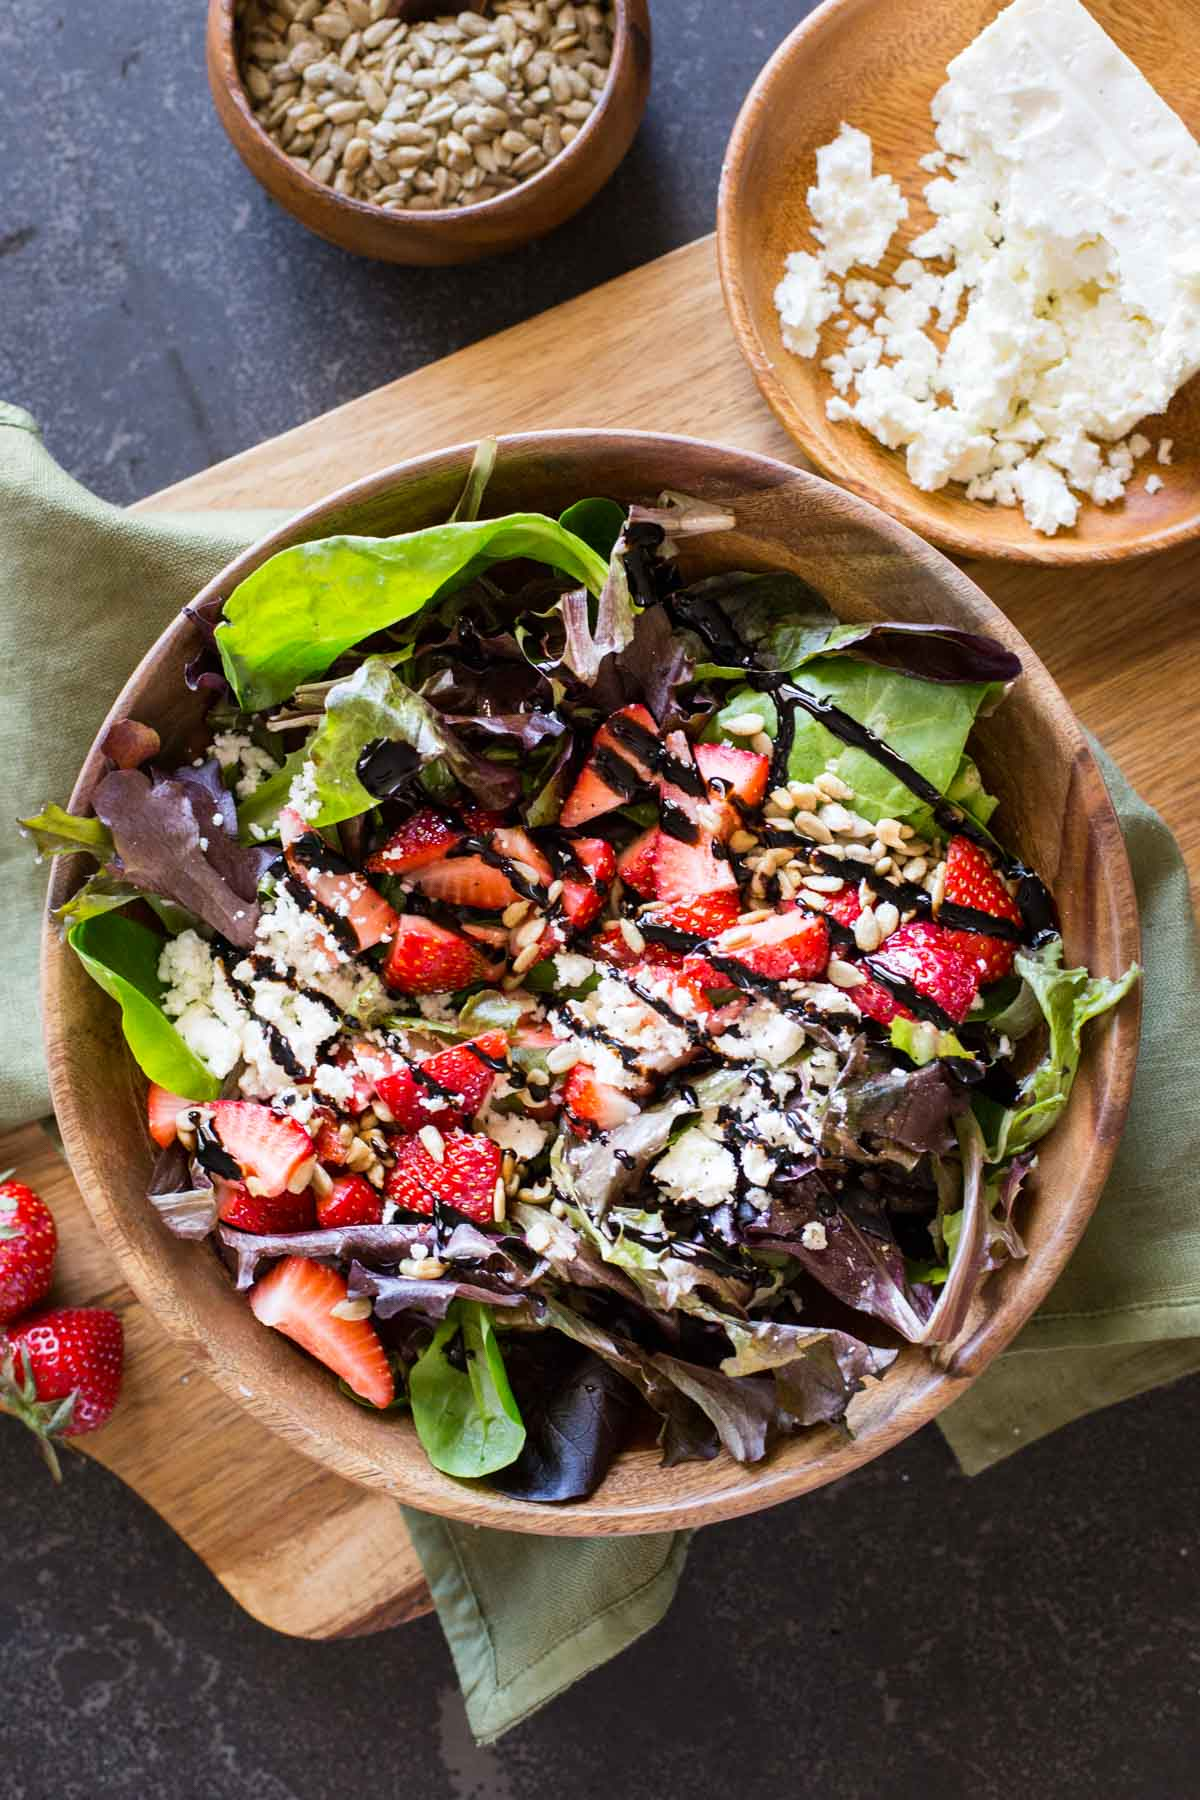 A bowl of Easy Strawberry Balsamic Salad sitting next to a small bowl of crumbled feta and a small bowl of sunflower seeds.